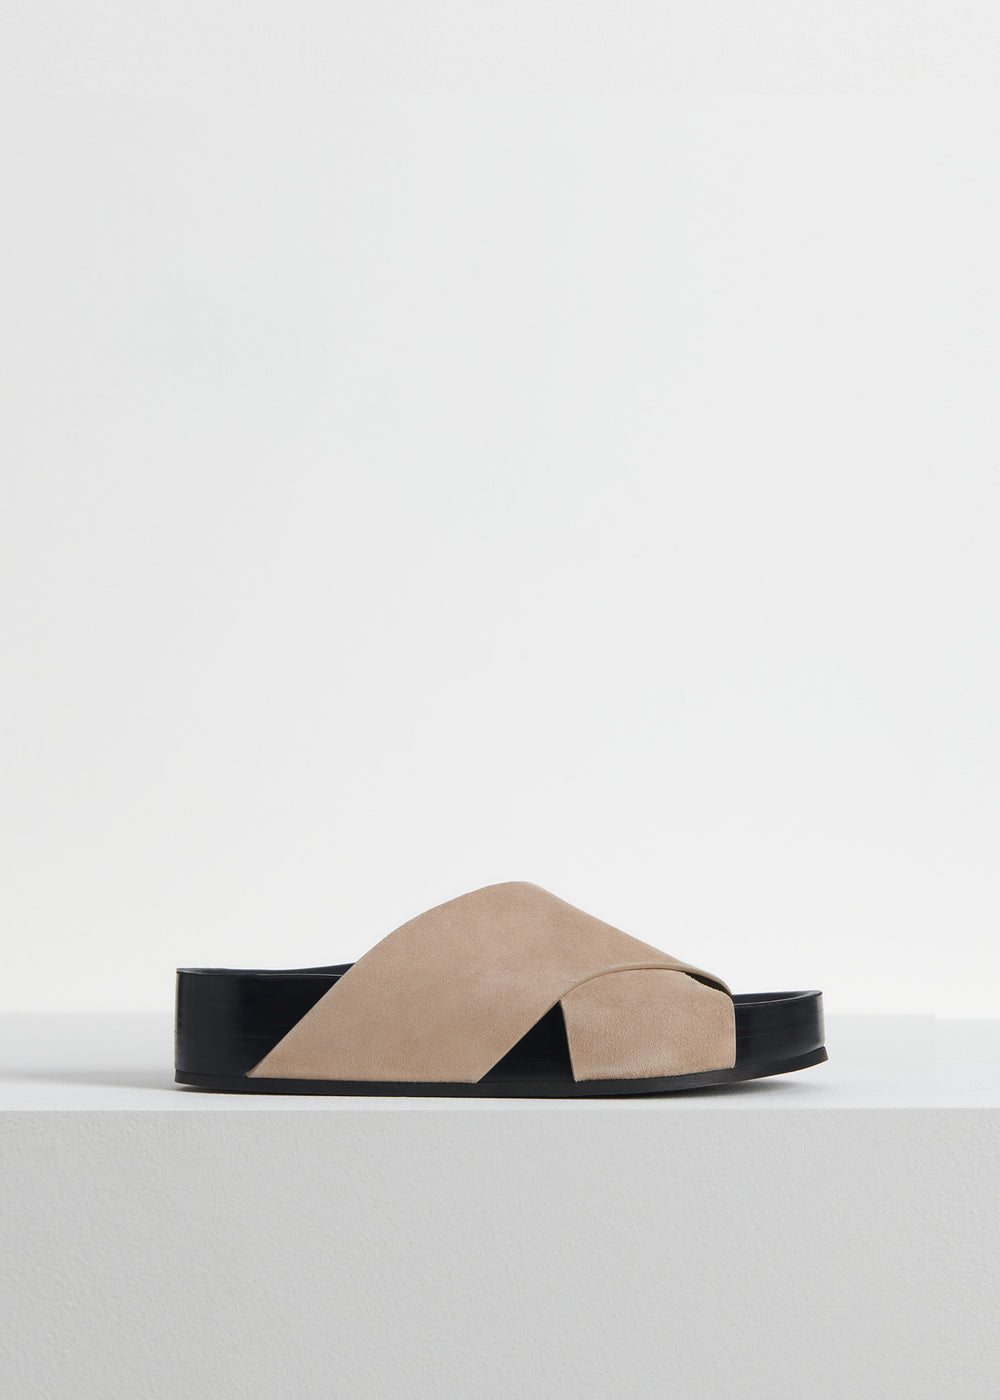 Cross Slide Sandal in Smooth Leather - White in Sand by Co Collections